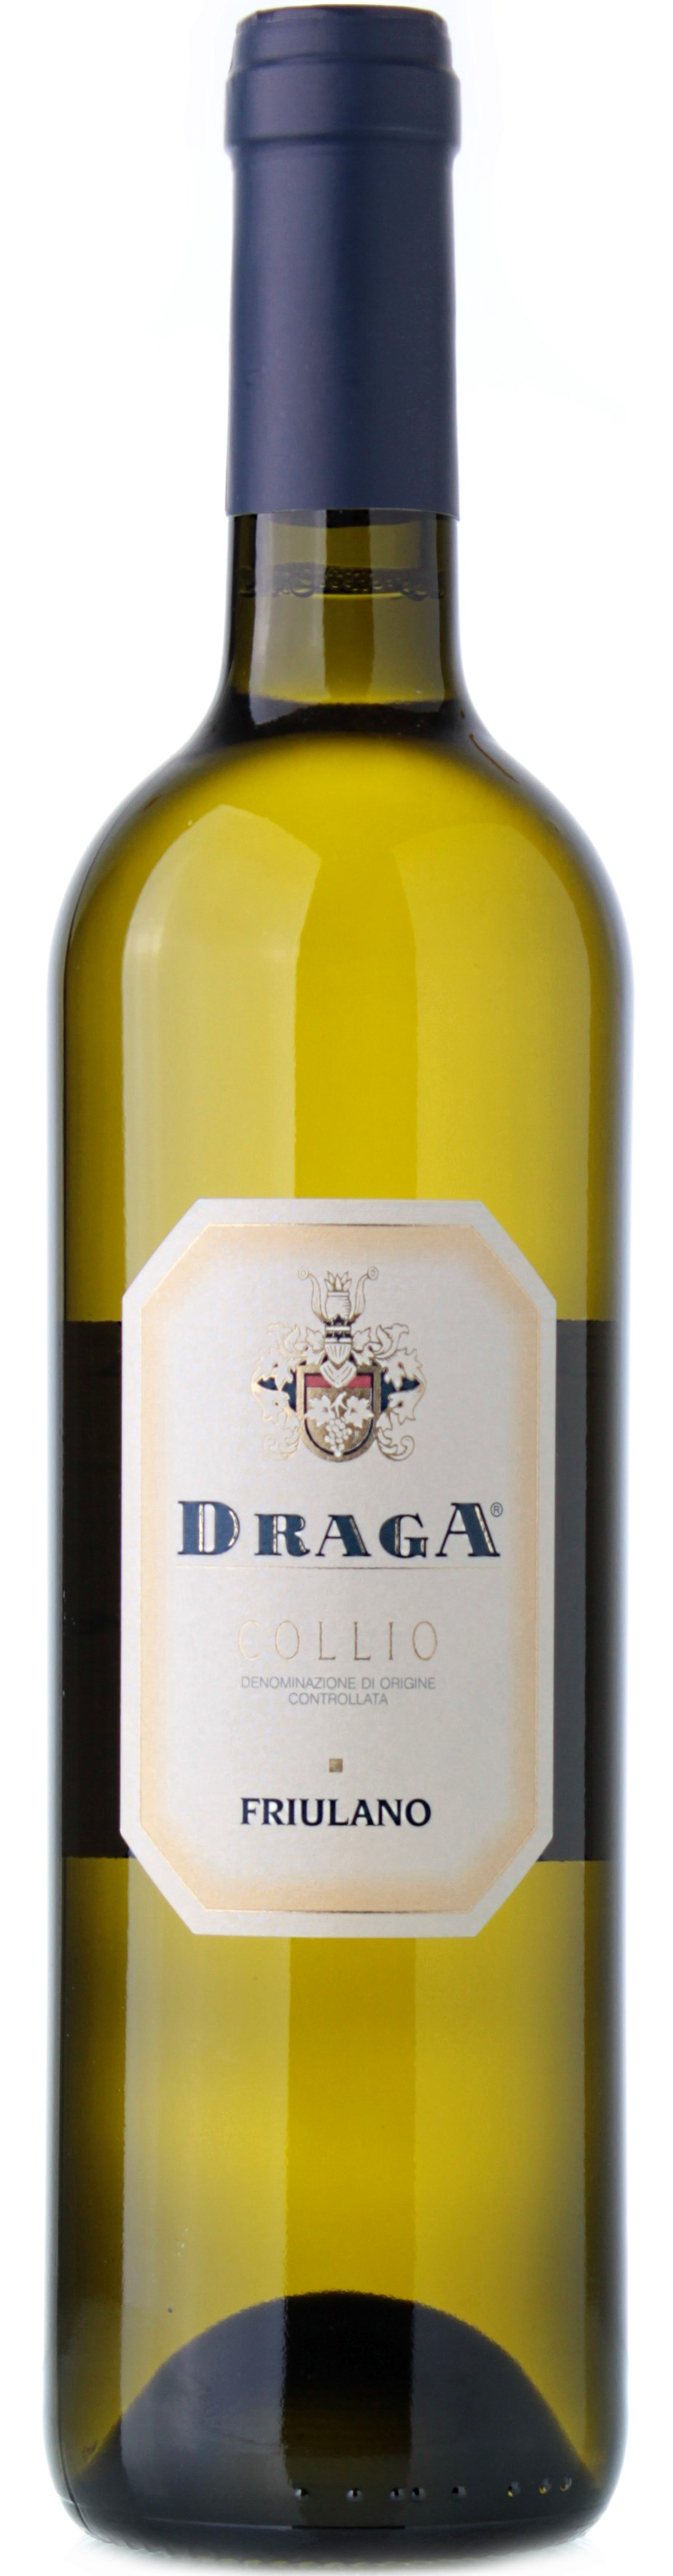 DRAGA COLLIO FRIULANO 2015